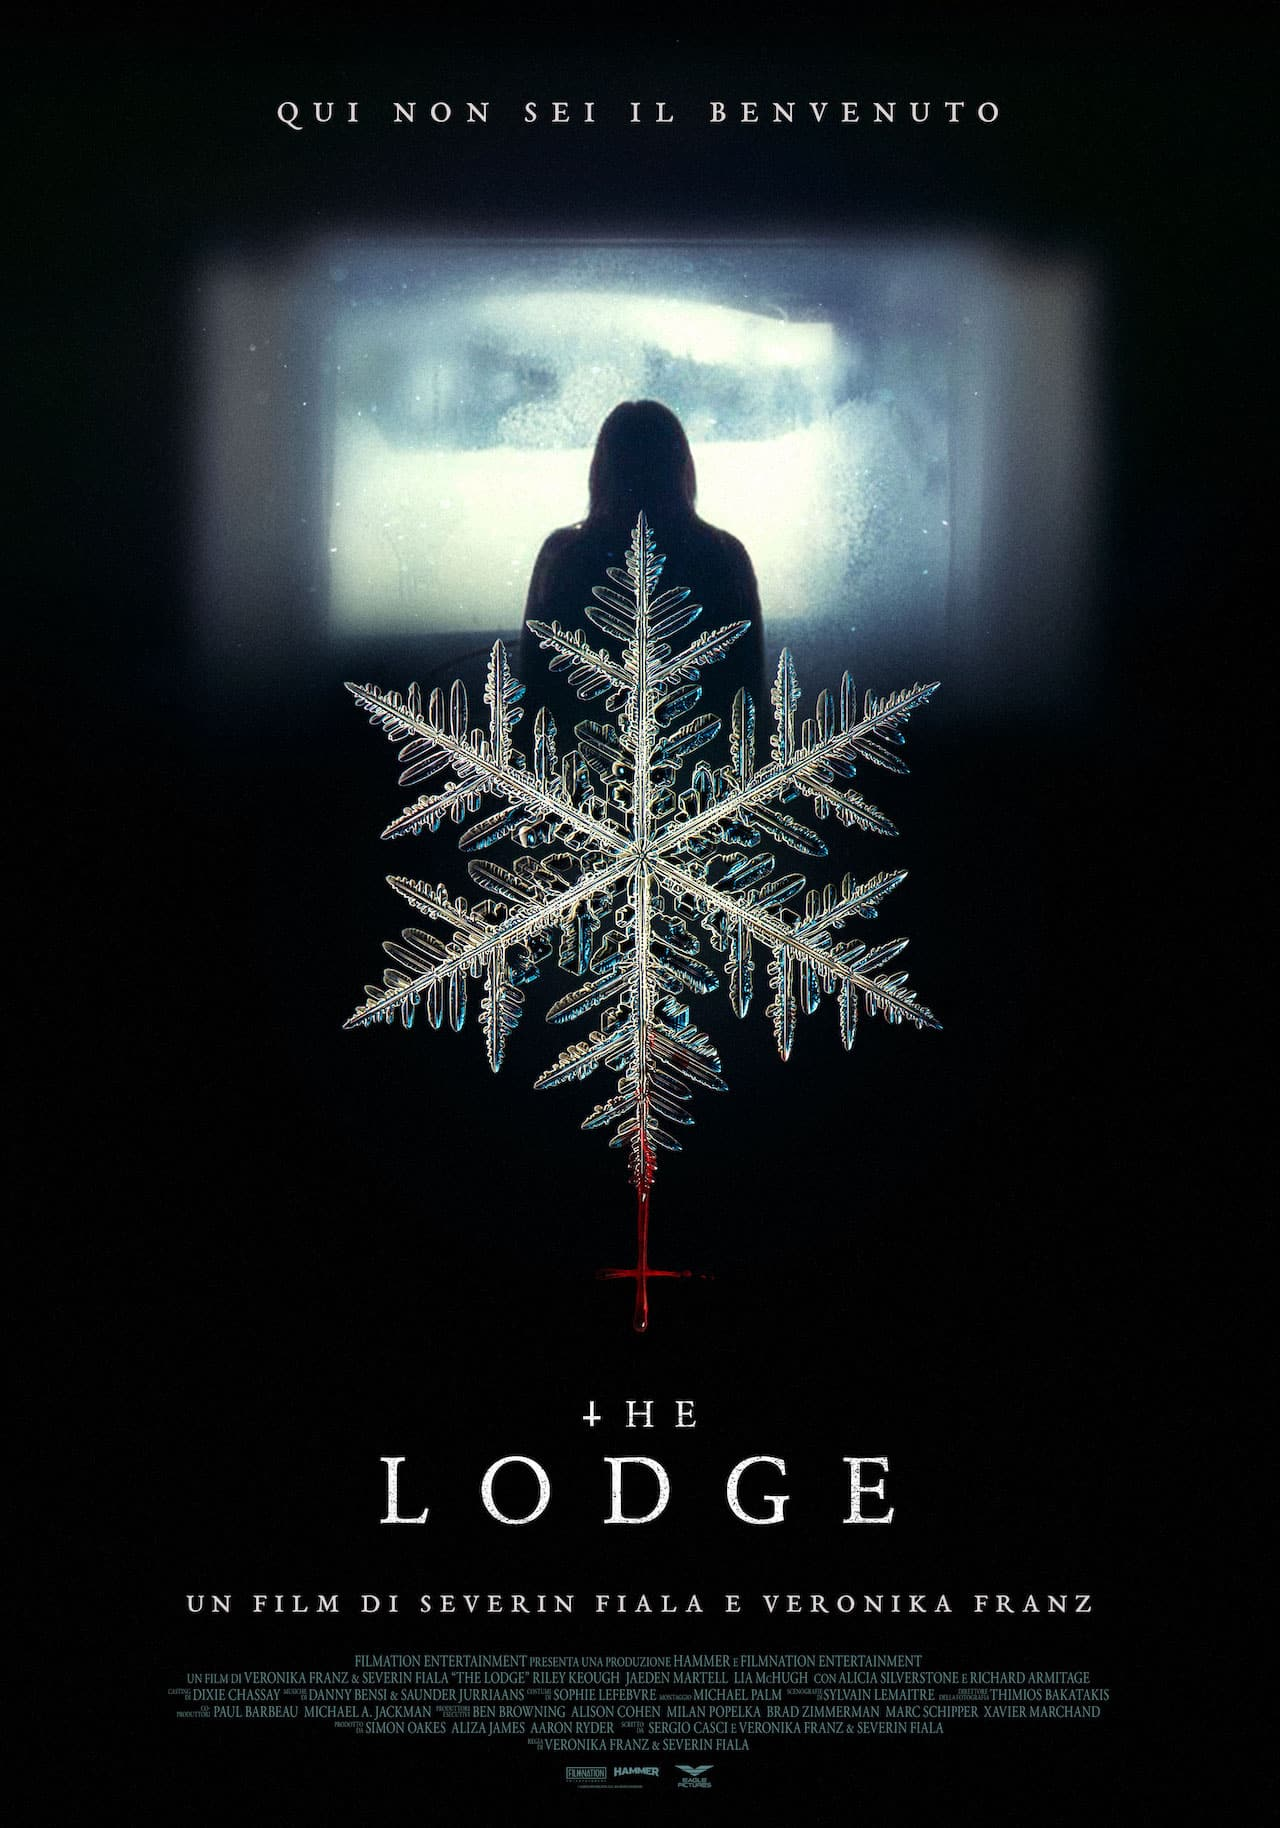 The Lodge Cinematographe.it